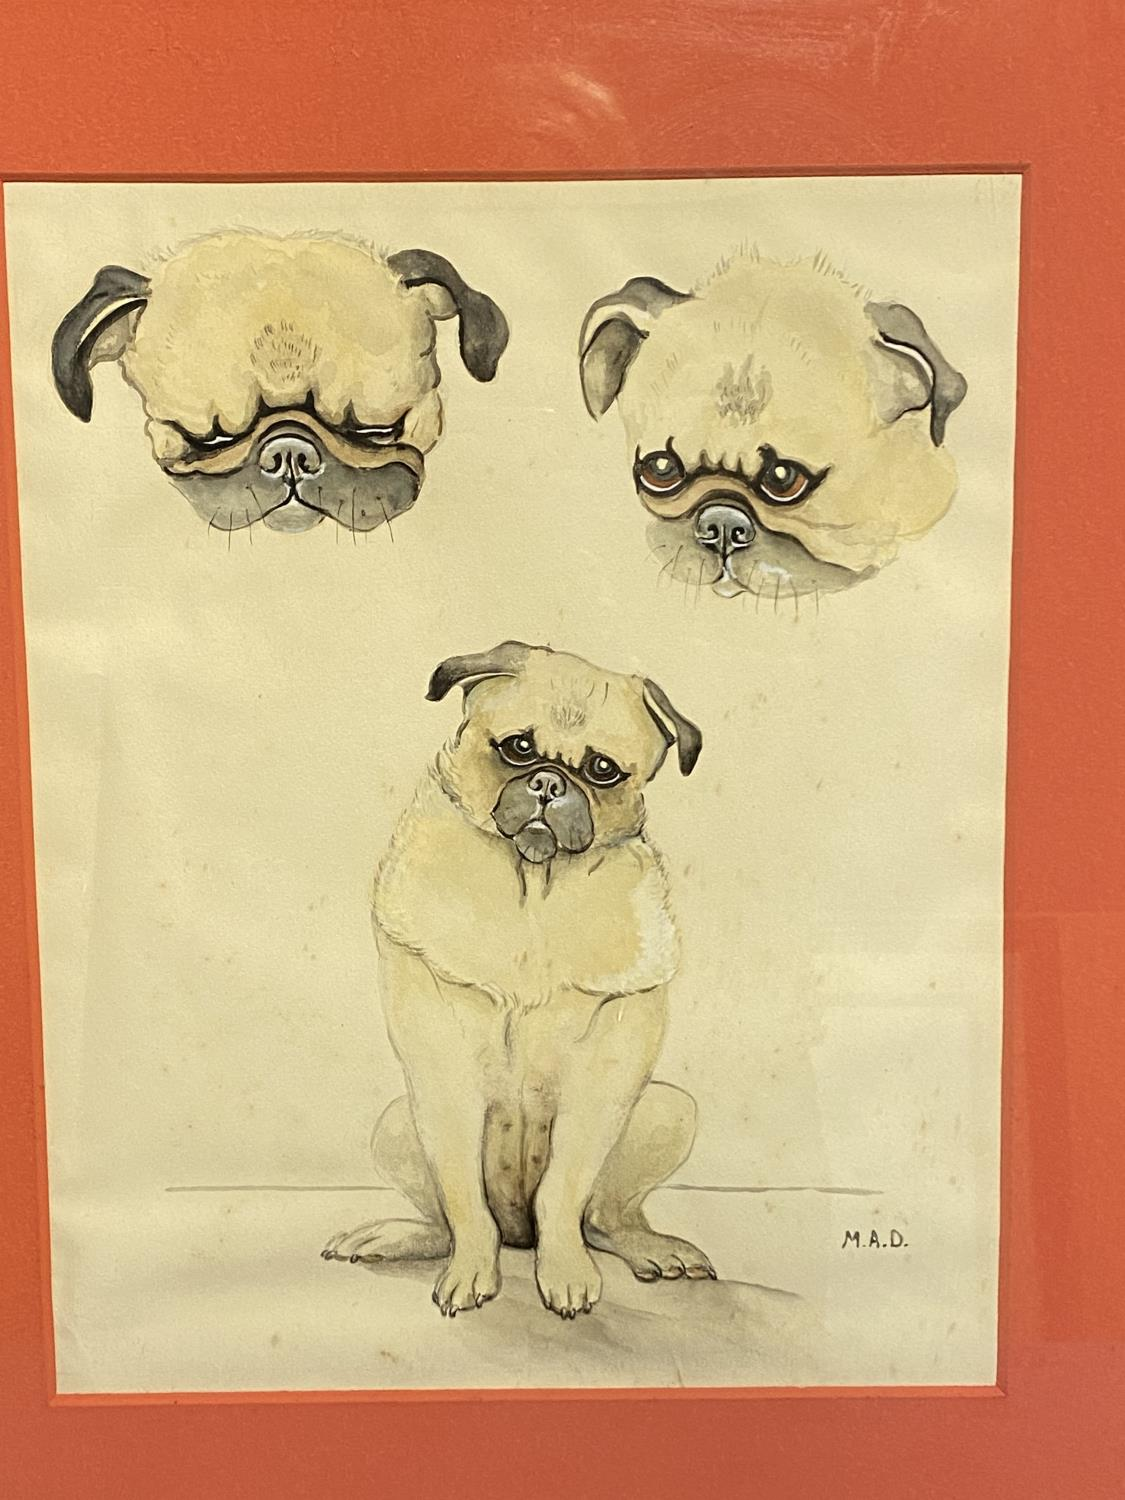 Framed and glazed ink & pencil/mixed media study of Pug dogs, signed lower right MAD, overall size - Image 3 of 4